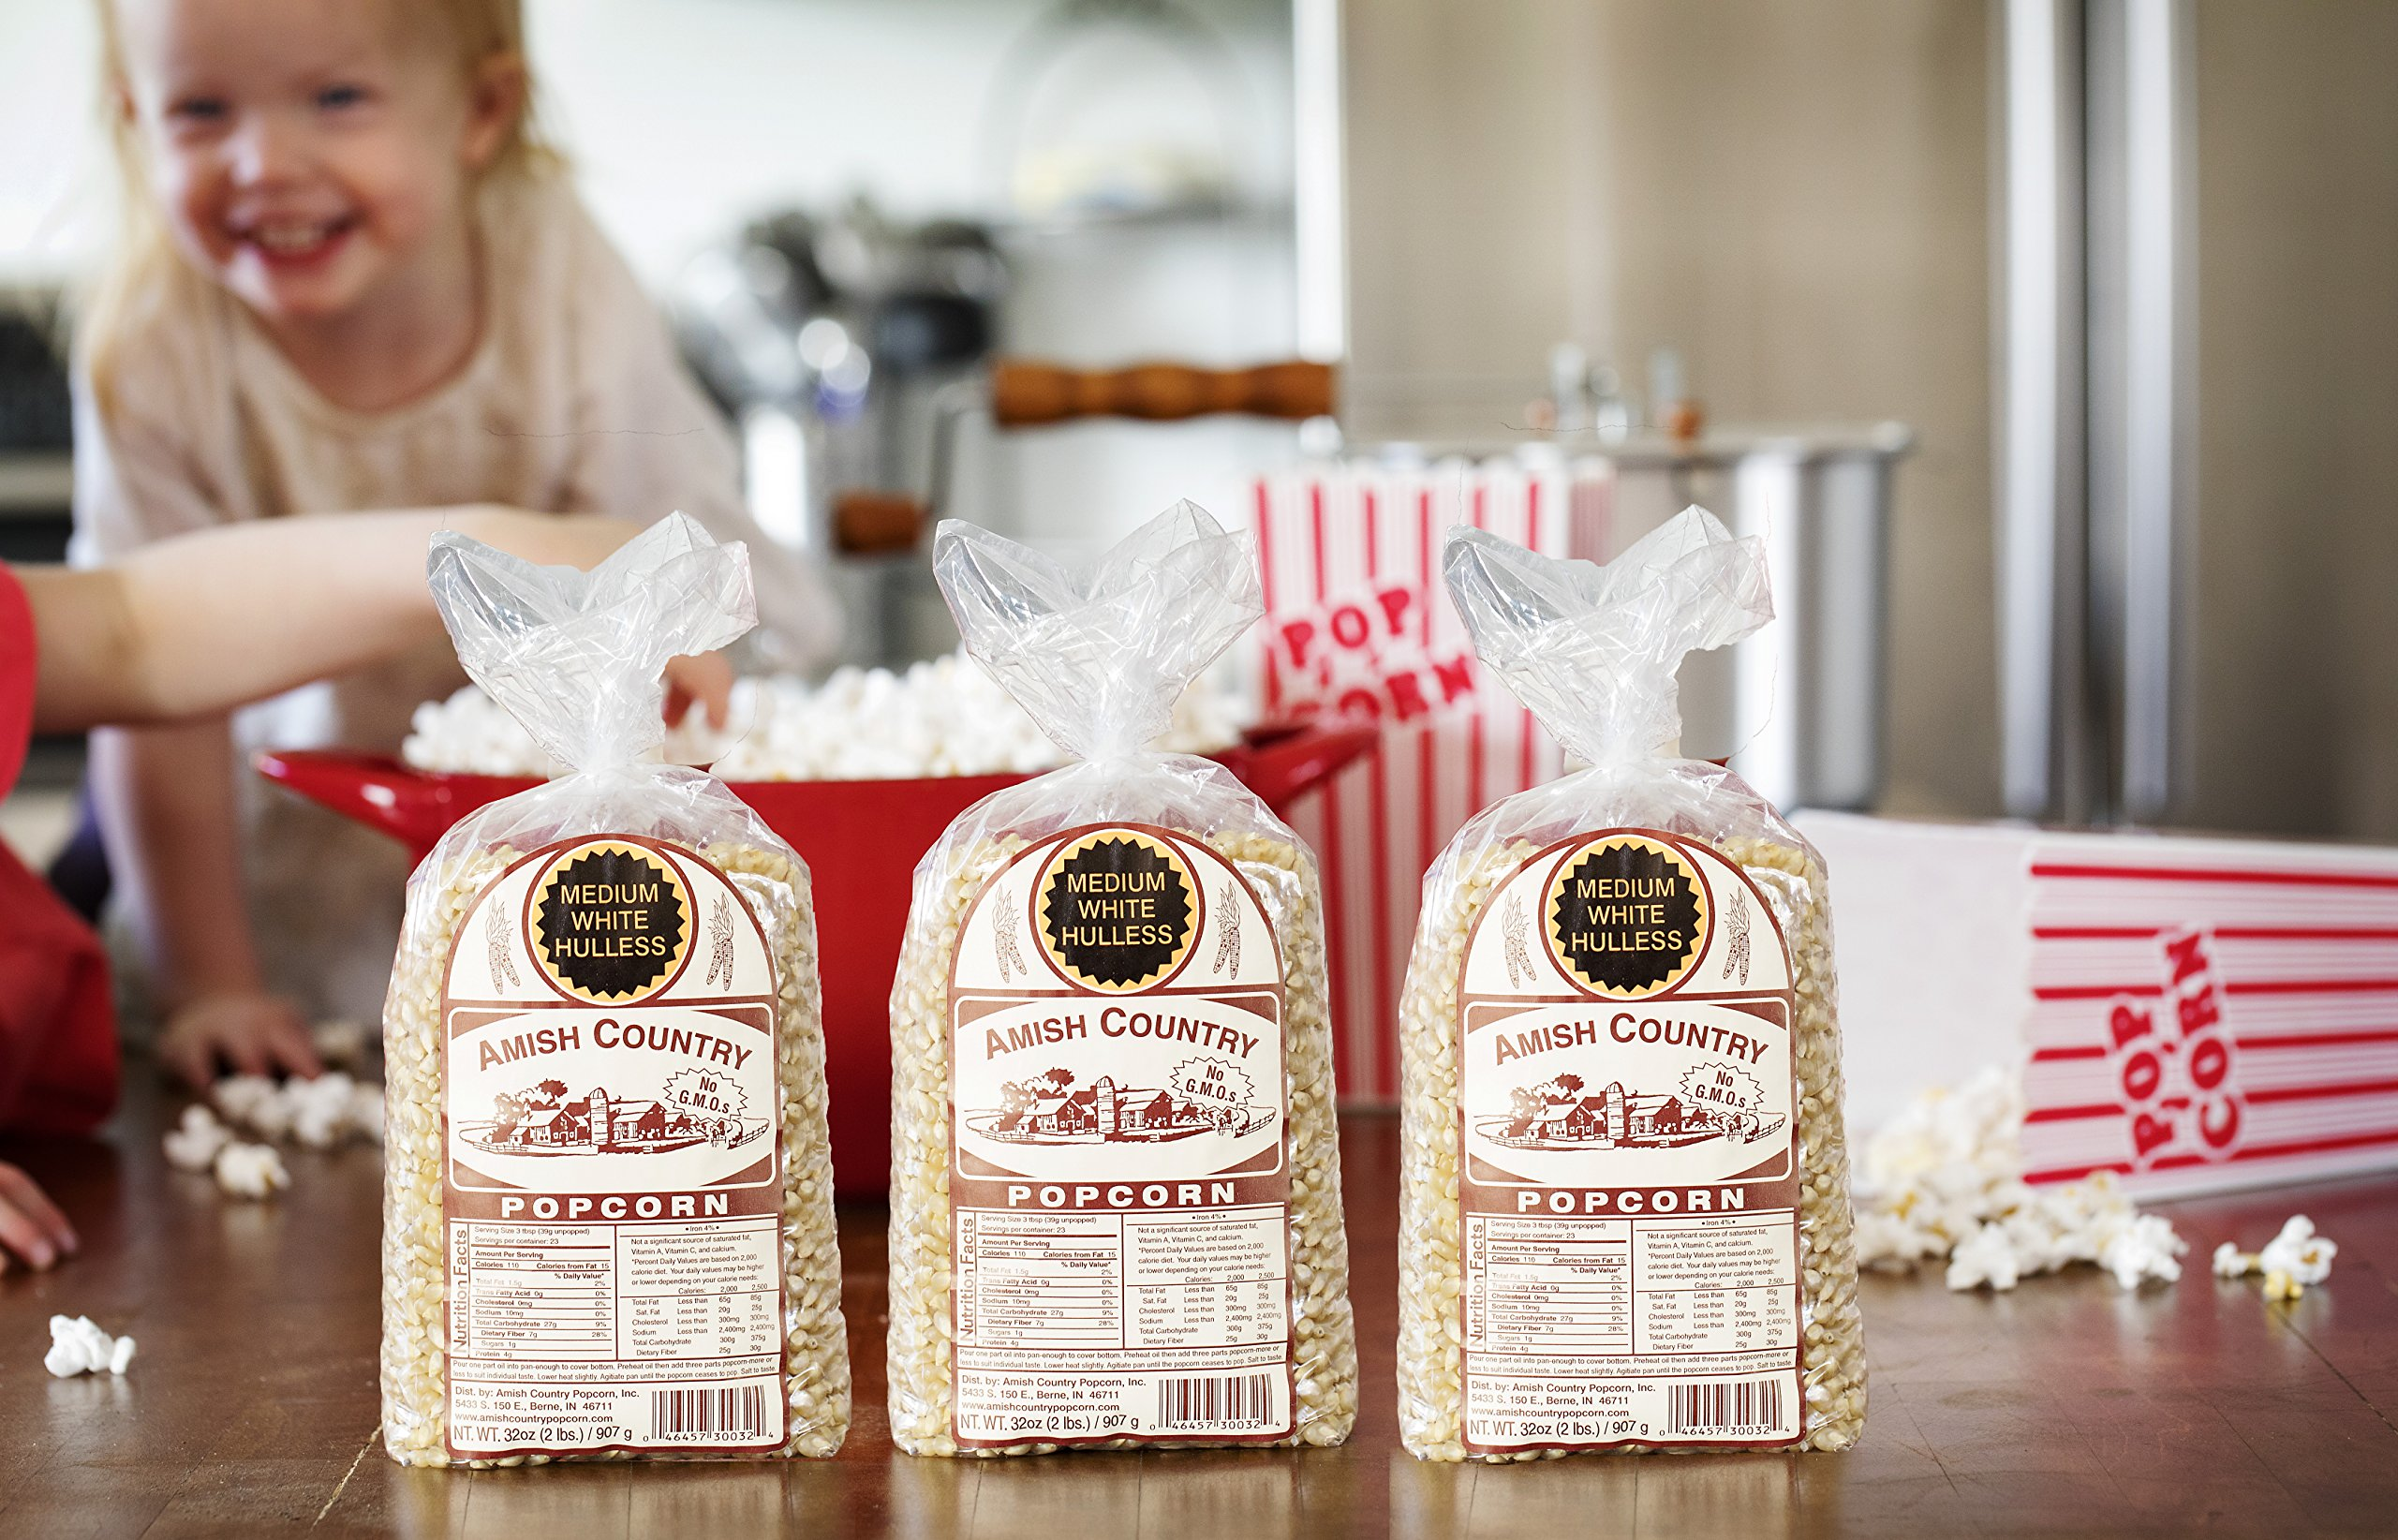 Amish Country Popcorn - 3 (2 Pound Bags) Medium White Popcorn Gift Set Old Fashioned, Non GMO and Gluten Free - With Recipe Guide by Amish Country Popcorn (Image #4)